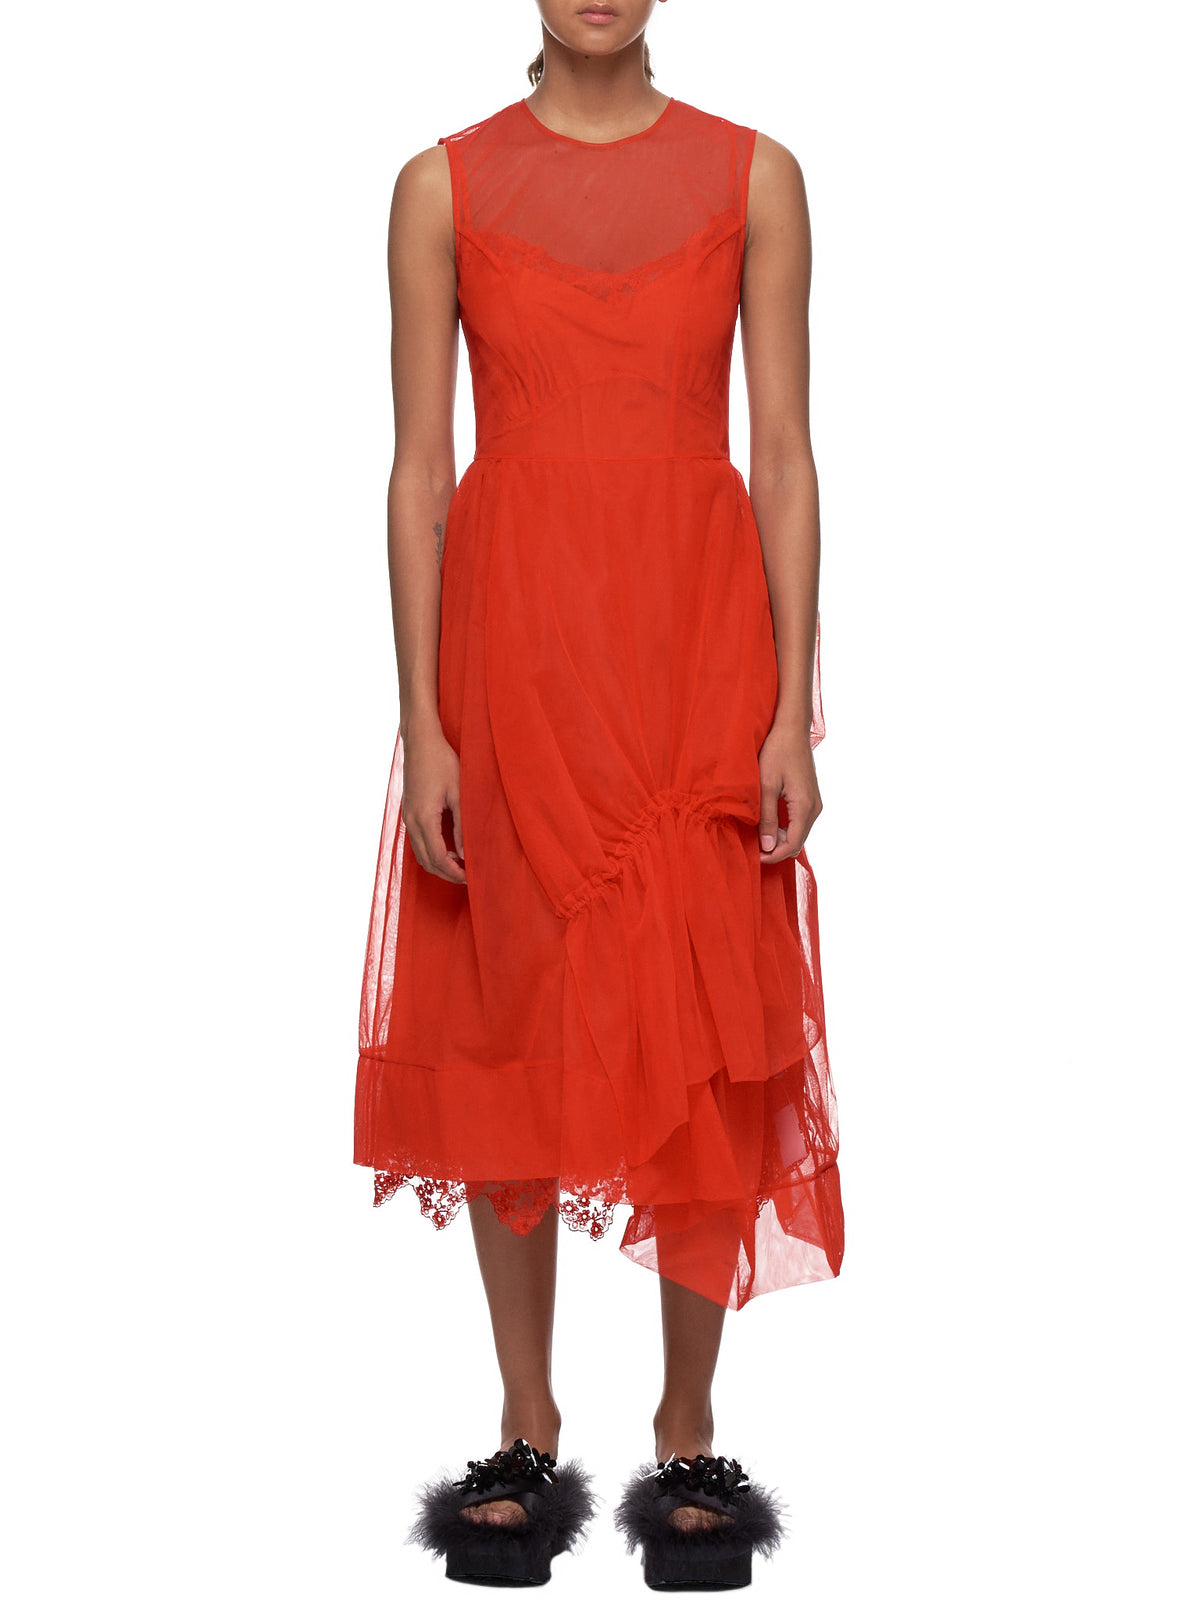 Gathered Asymmetric Dress (3738-006-RED)